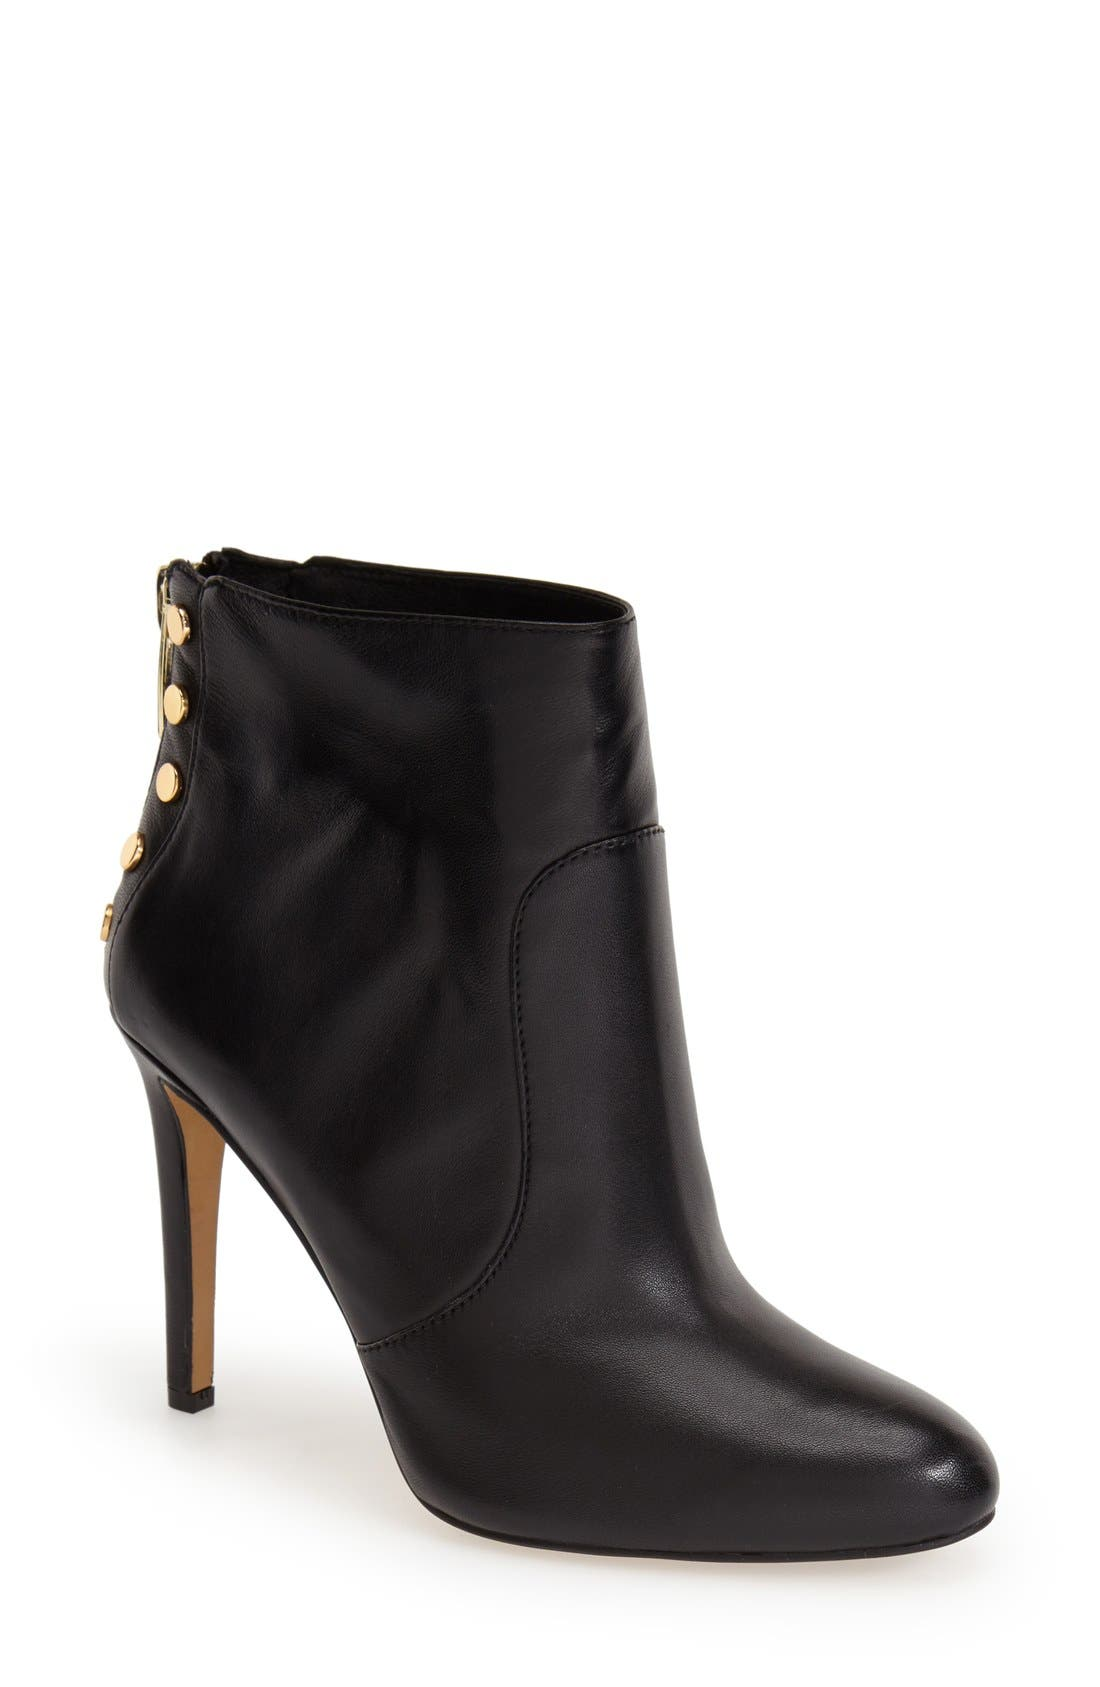 VINCE CAMUTO 'Bustell' Studded Bootie, Main, color, 001